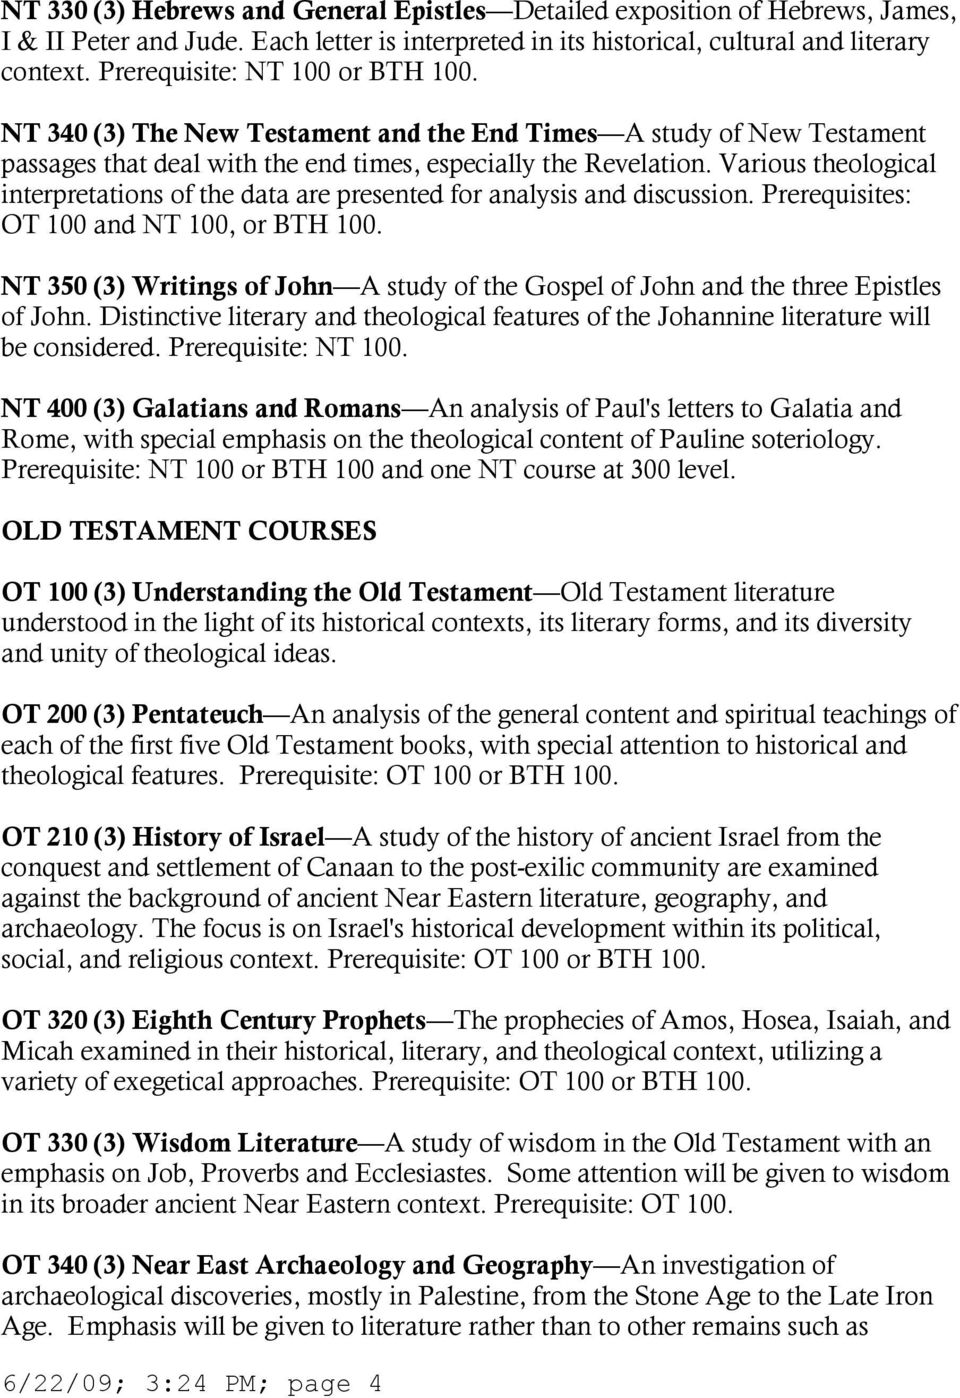 BIBLE-THEOLOGY AND PHILOSOPHY - PDF